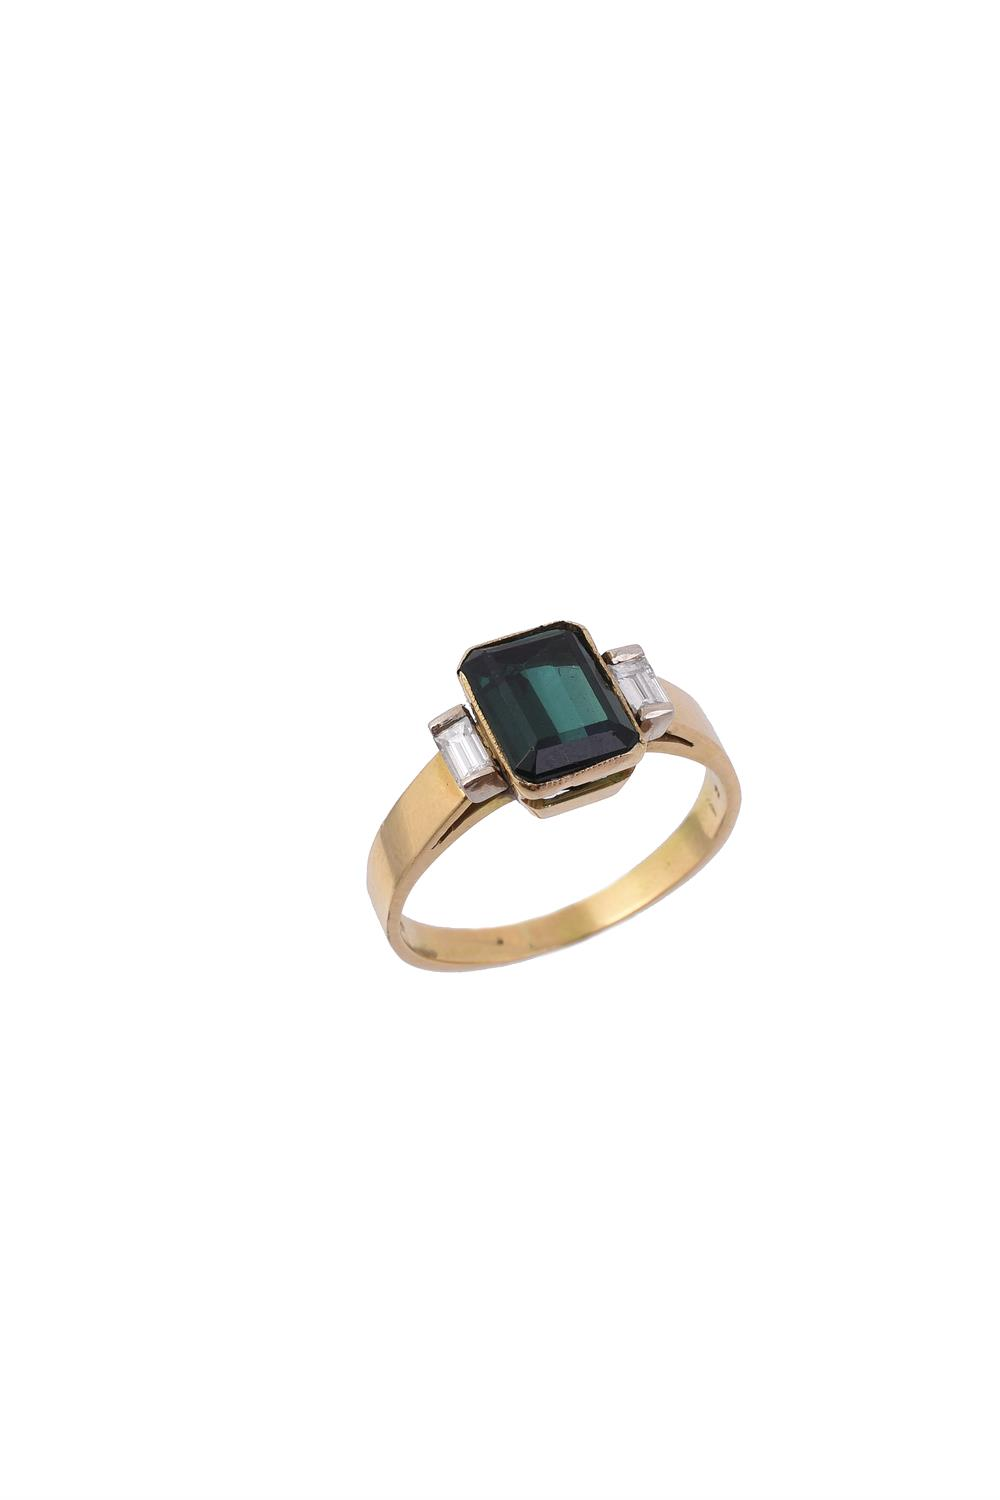 A green tourmaline and diamond three stone ring